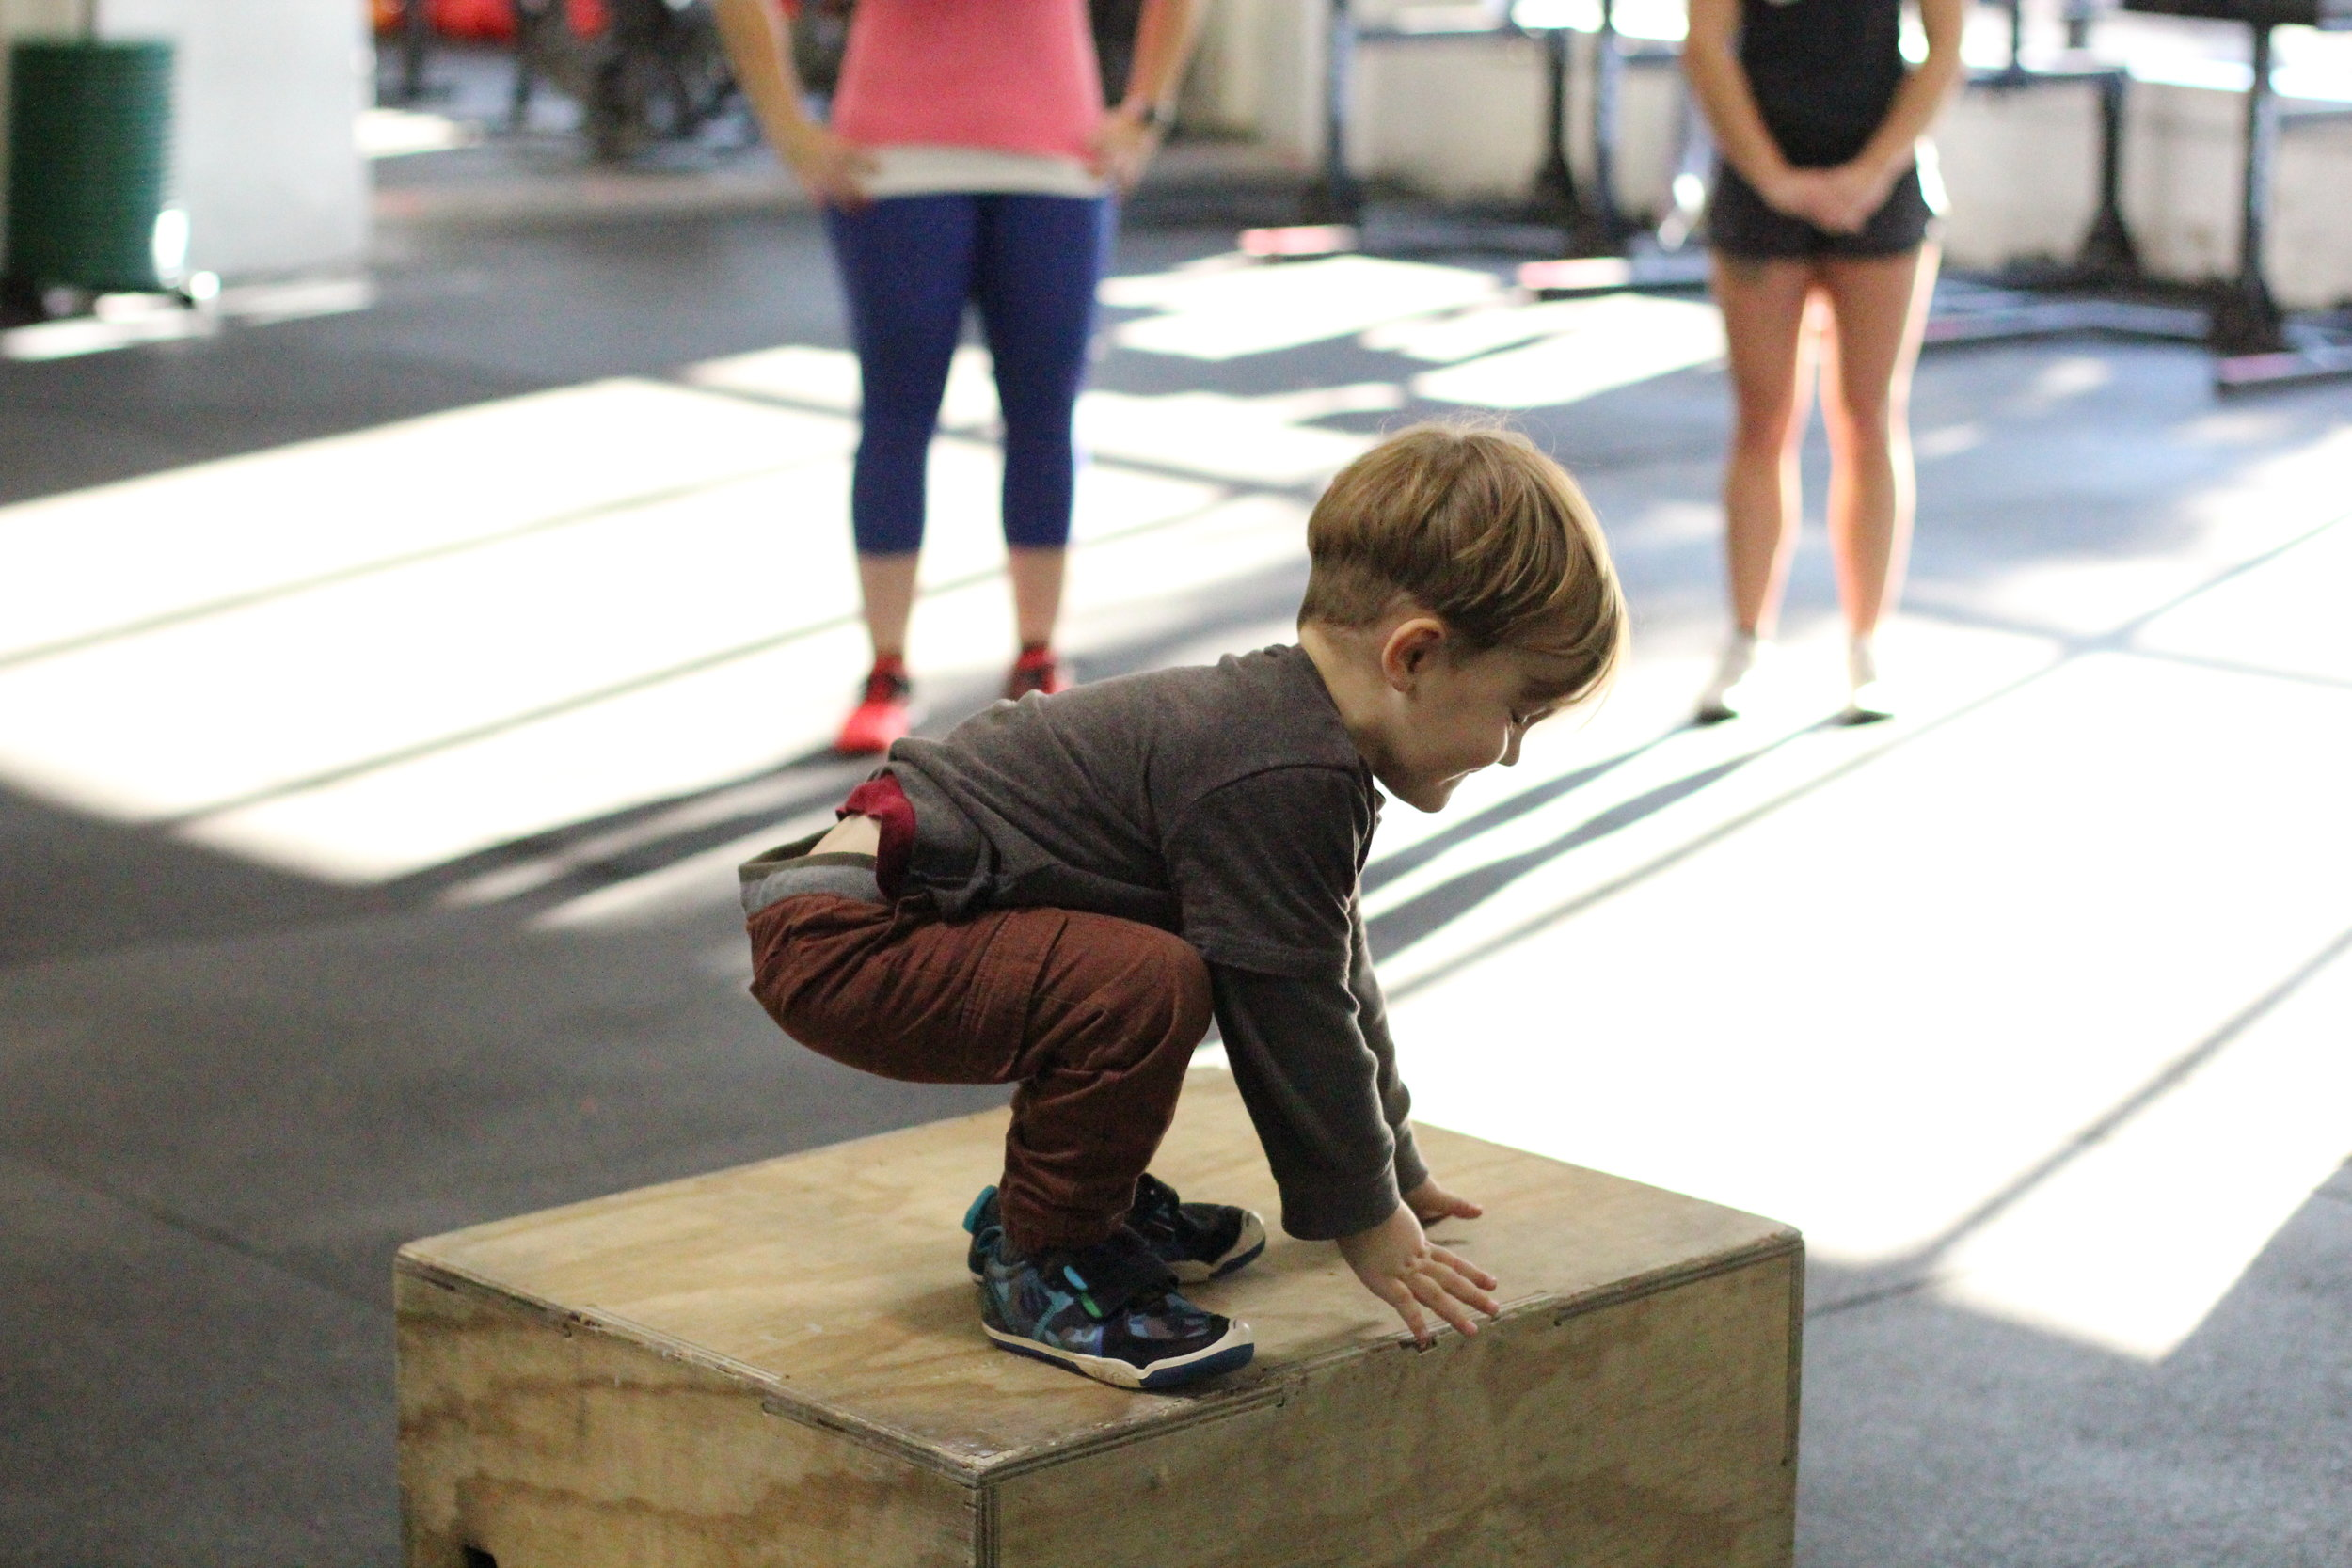 Some inspiration for all of those Burpee Box Jumps!